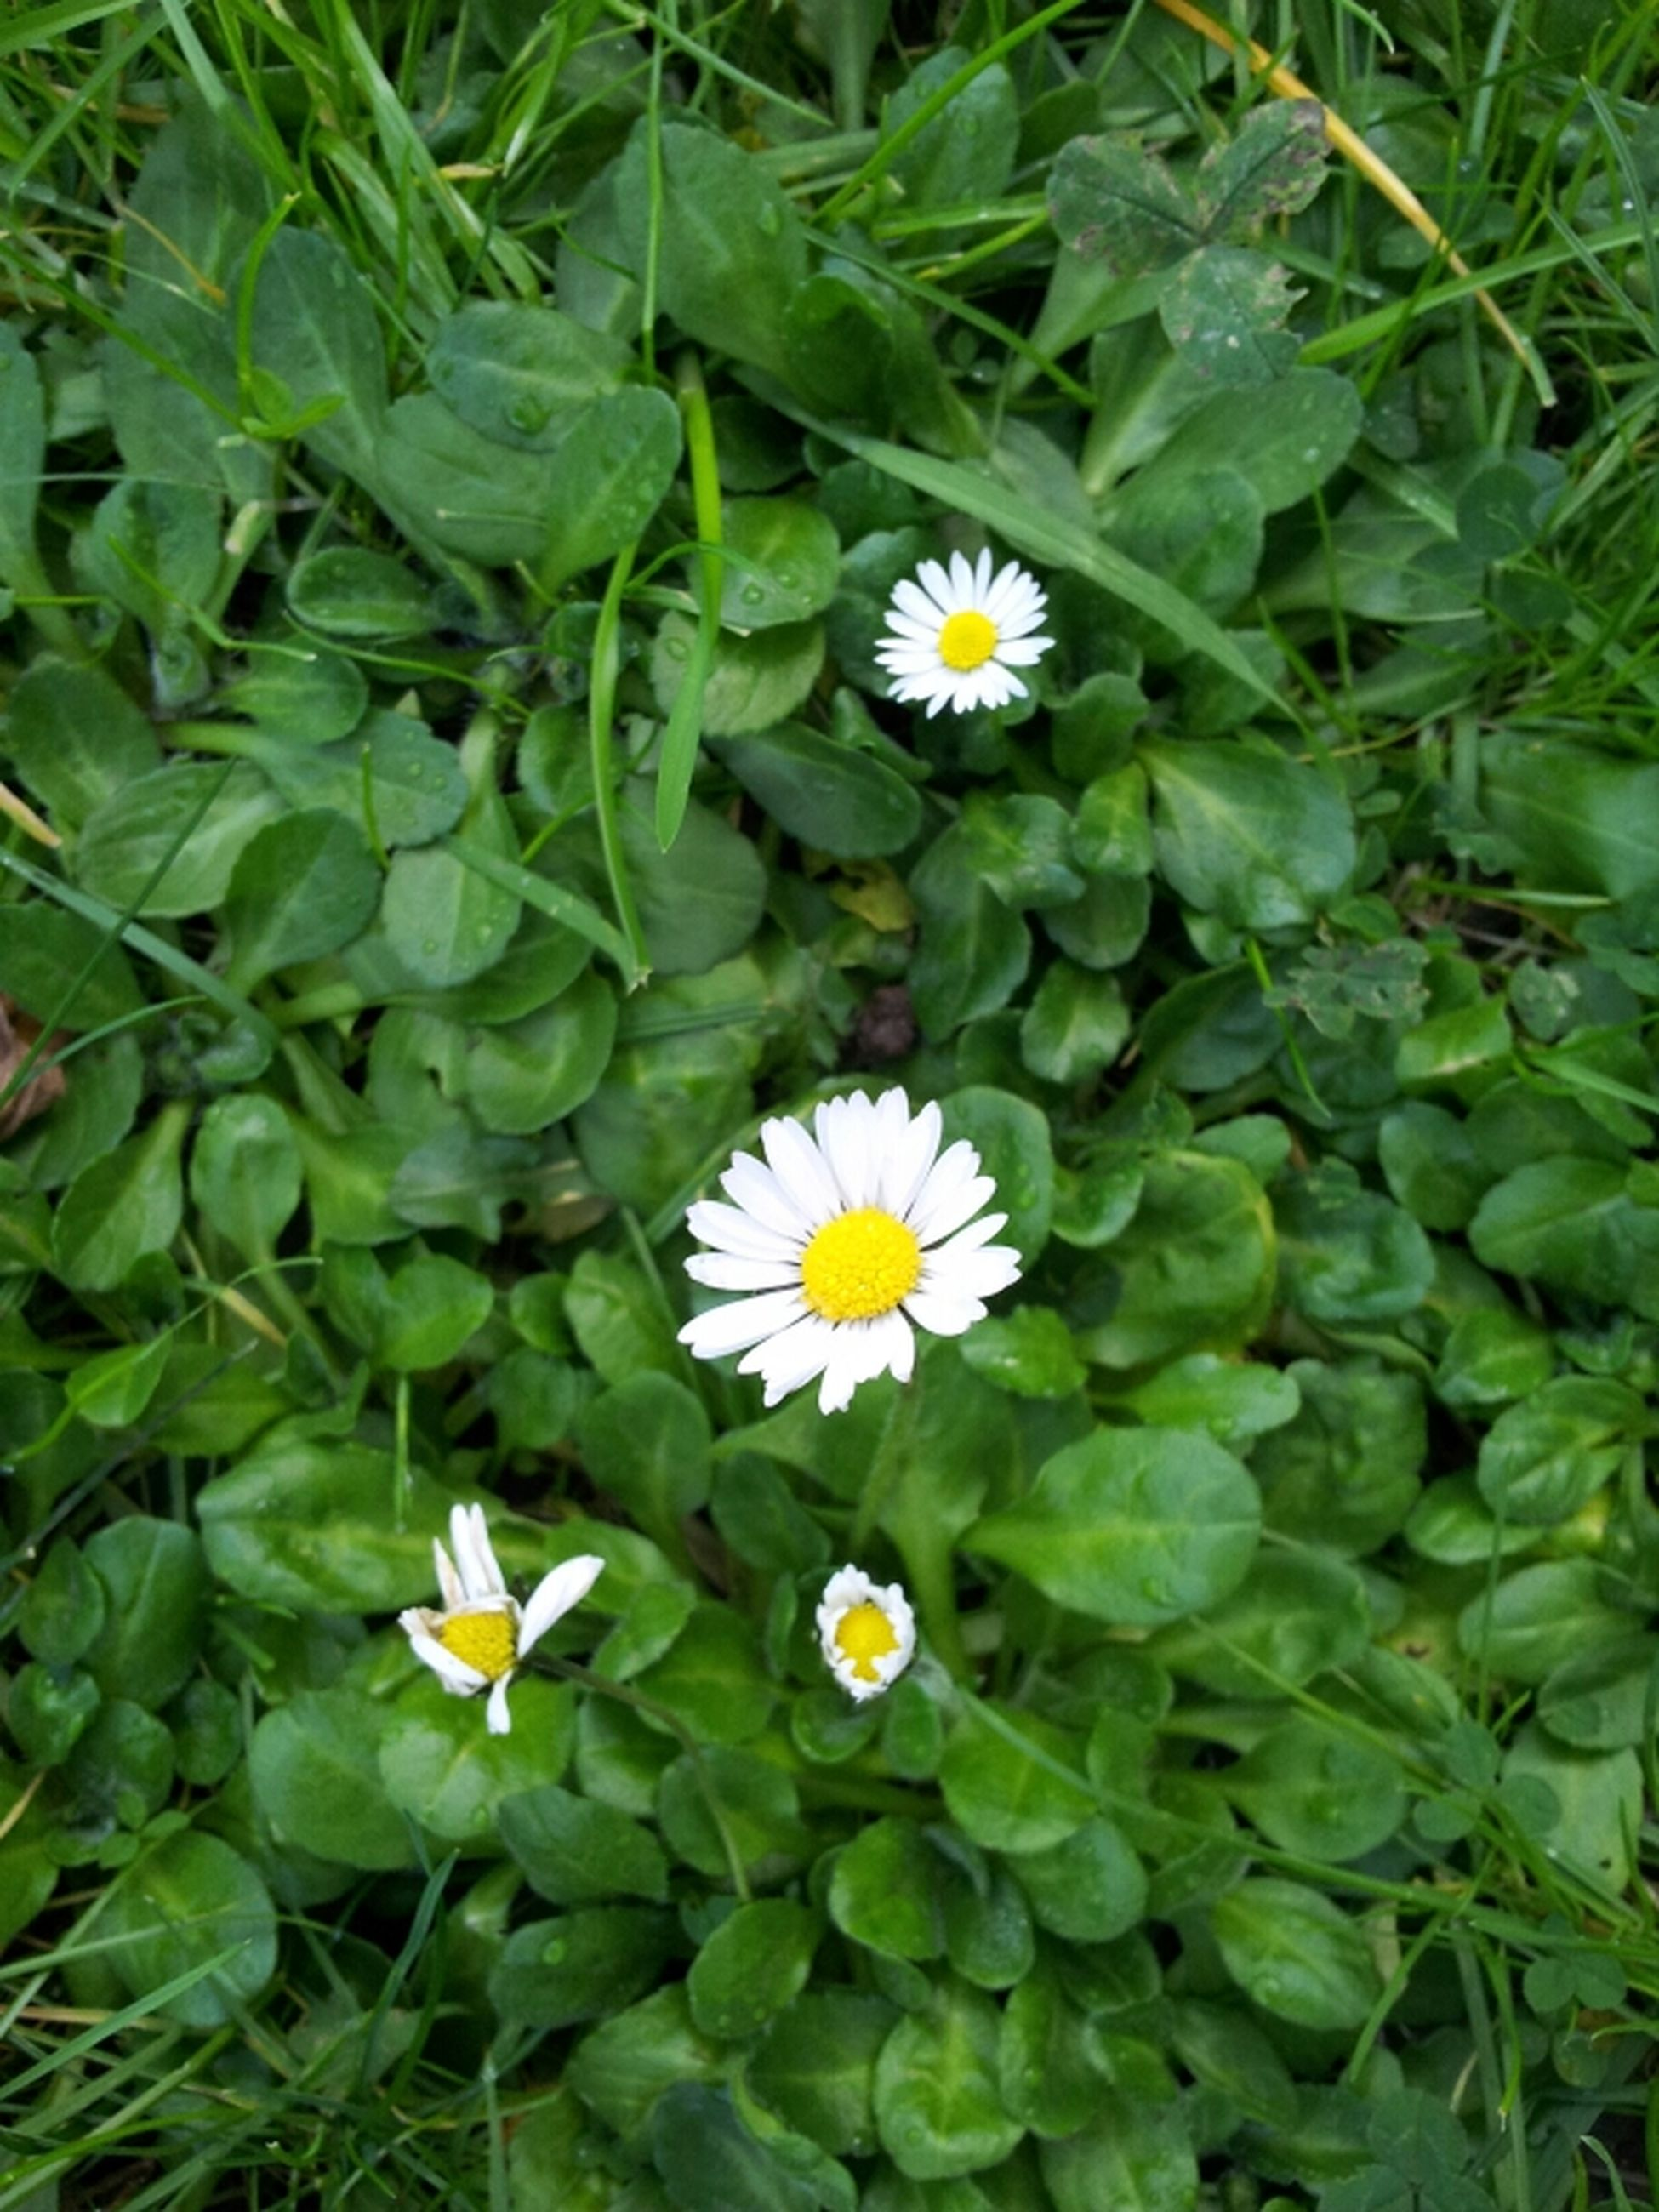 flower, freshness, fragility, petal, growth, flower head, white color, beauty in nature, leaf, green color, daisy, high angle view, plant, blooming, nature, yellow, in bloom, pollen, field, close-up